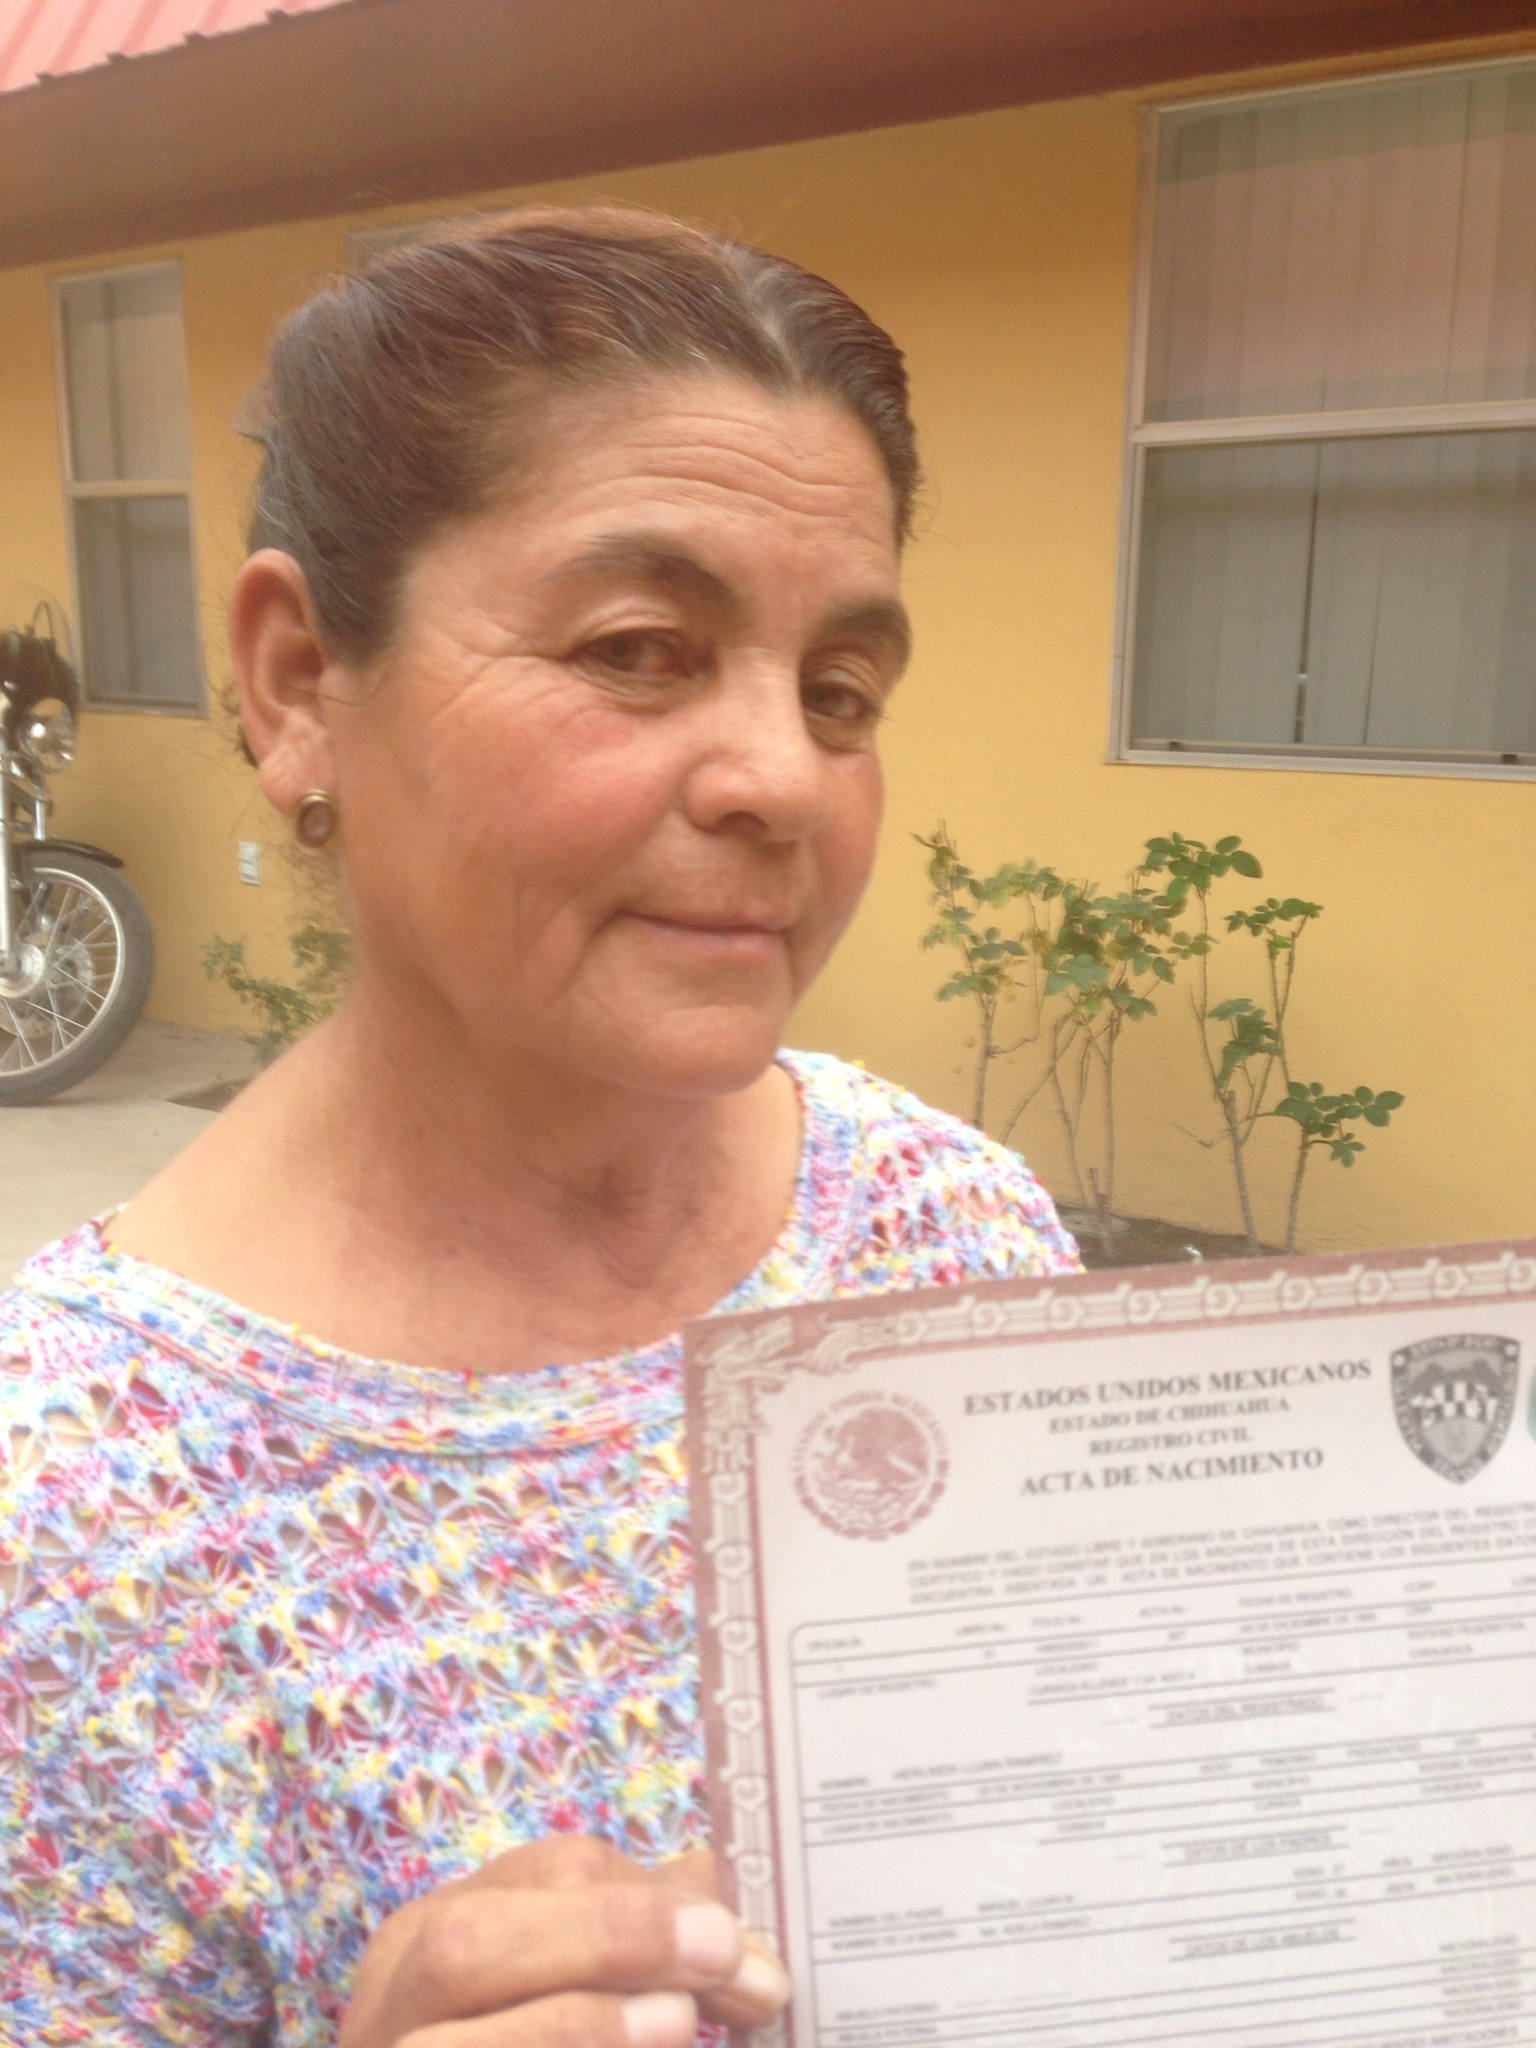 Mexico consulates issue birth certificates to undocumented herlinda aiddatafo Choice Image